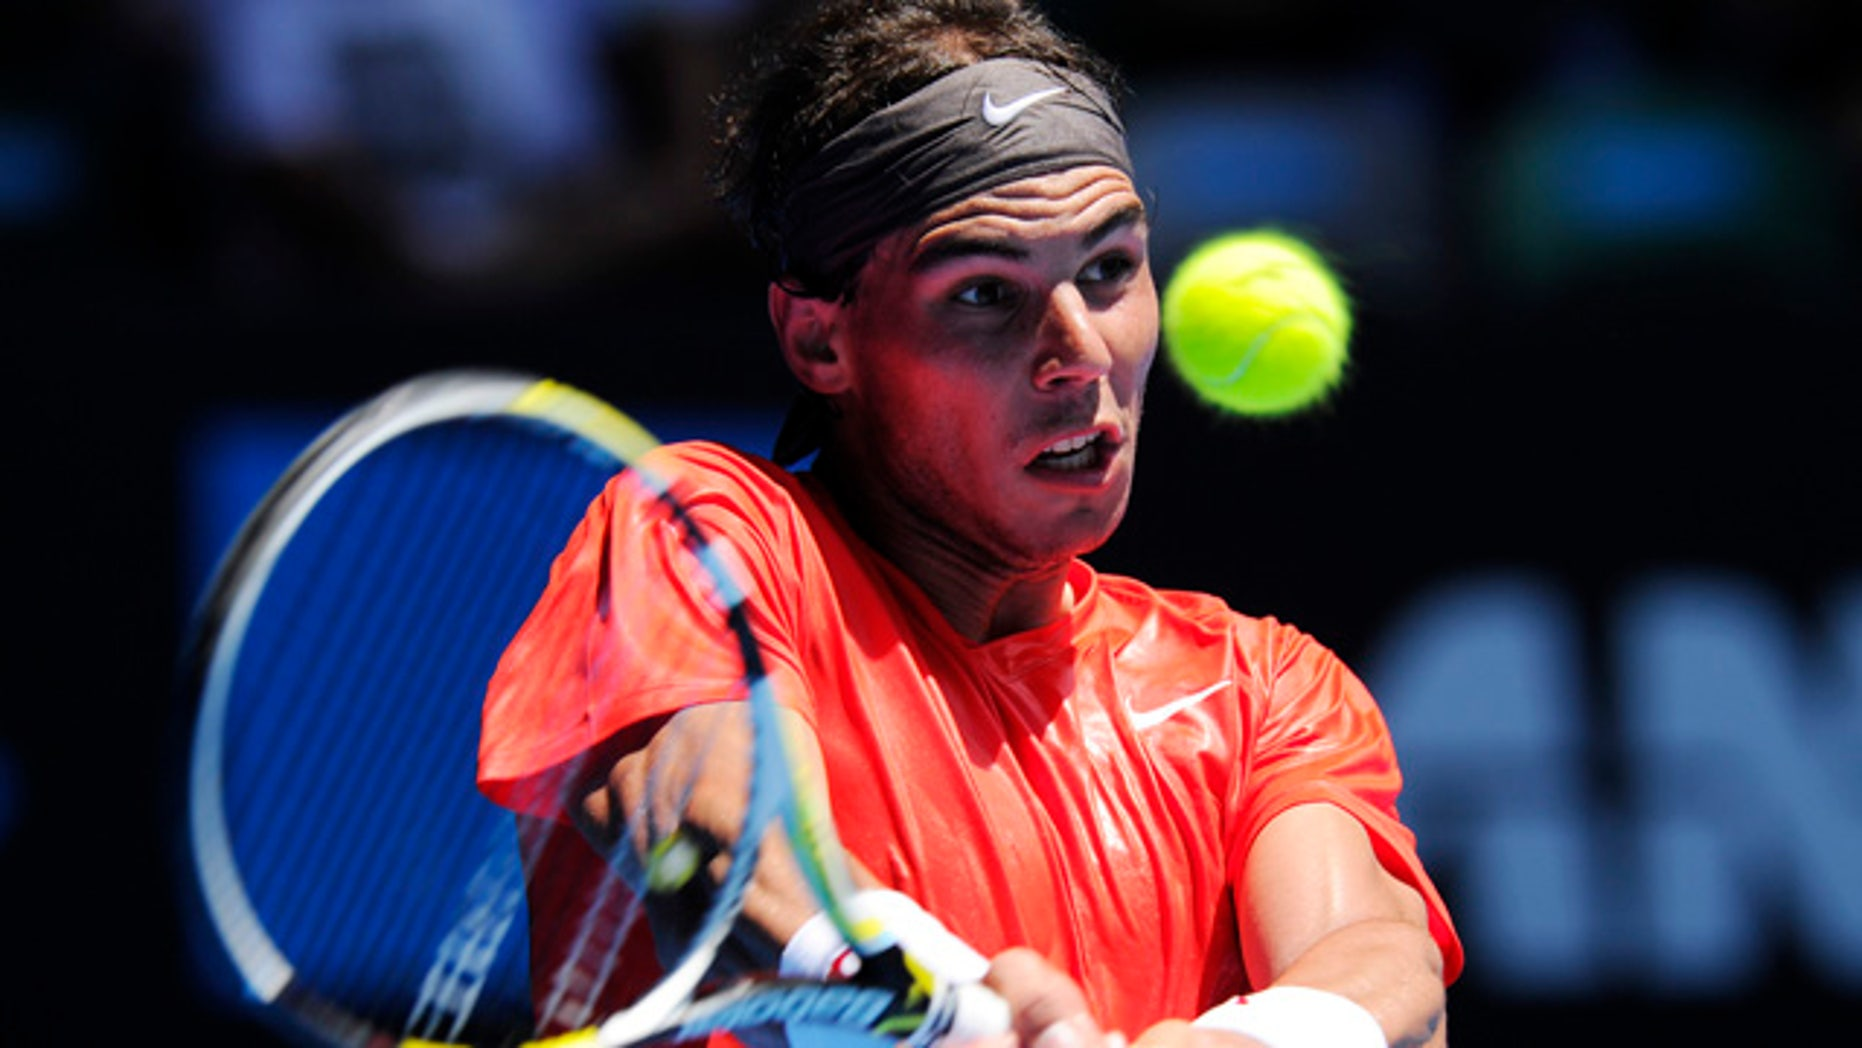 Jan. 20: Spain's Rafael Nadal makes a backhand return to Ryan Sweeting of the U.S. during their second round match at the Australian Open tennis championships in Melbourne, Australia.